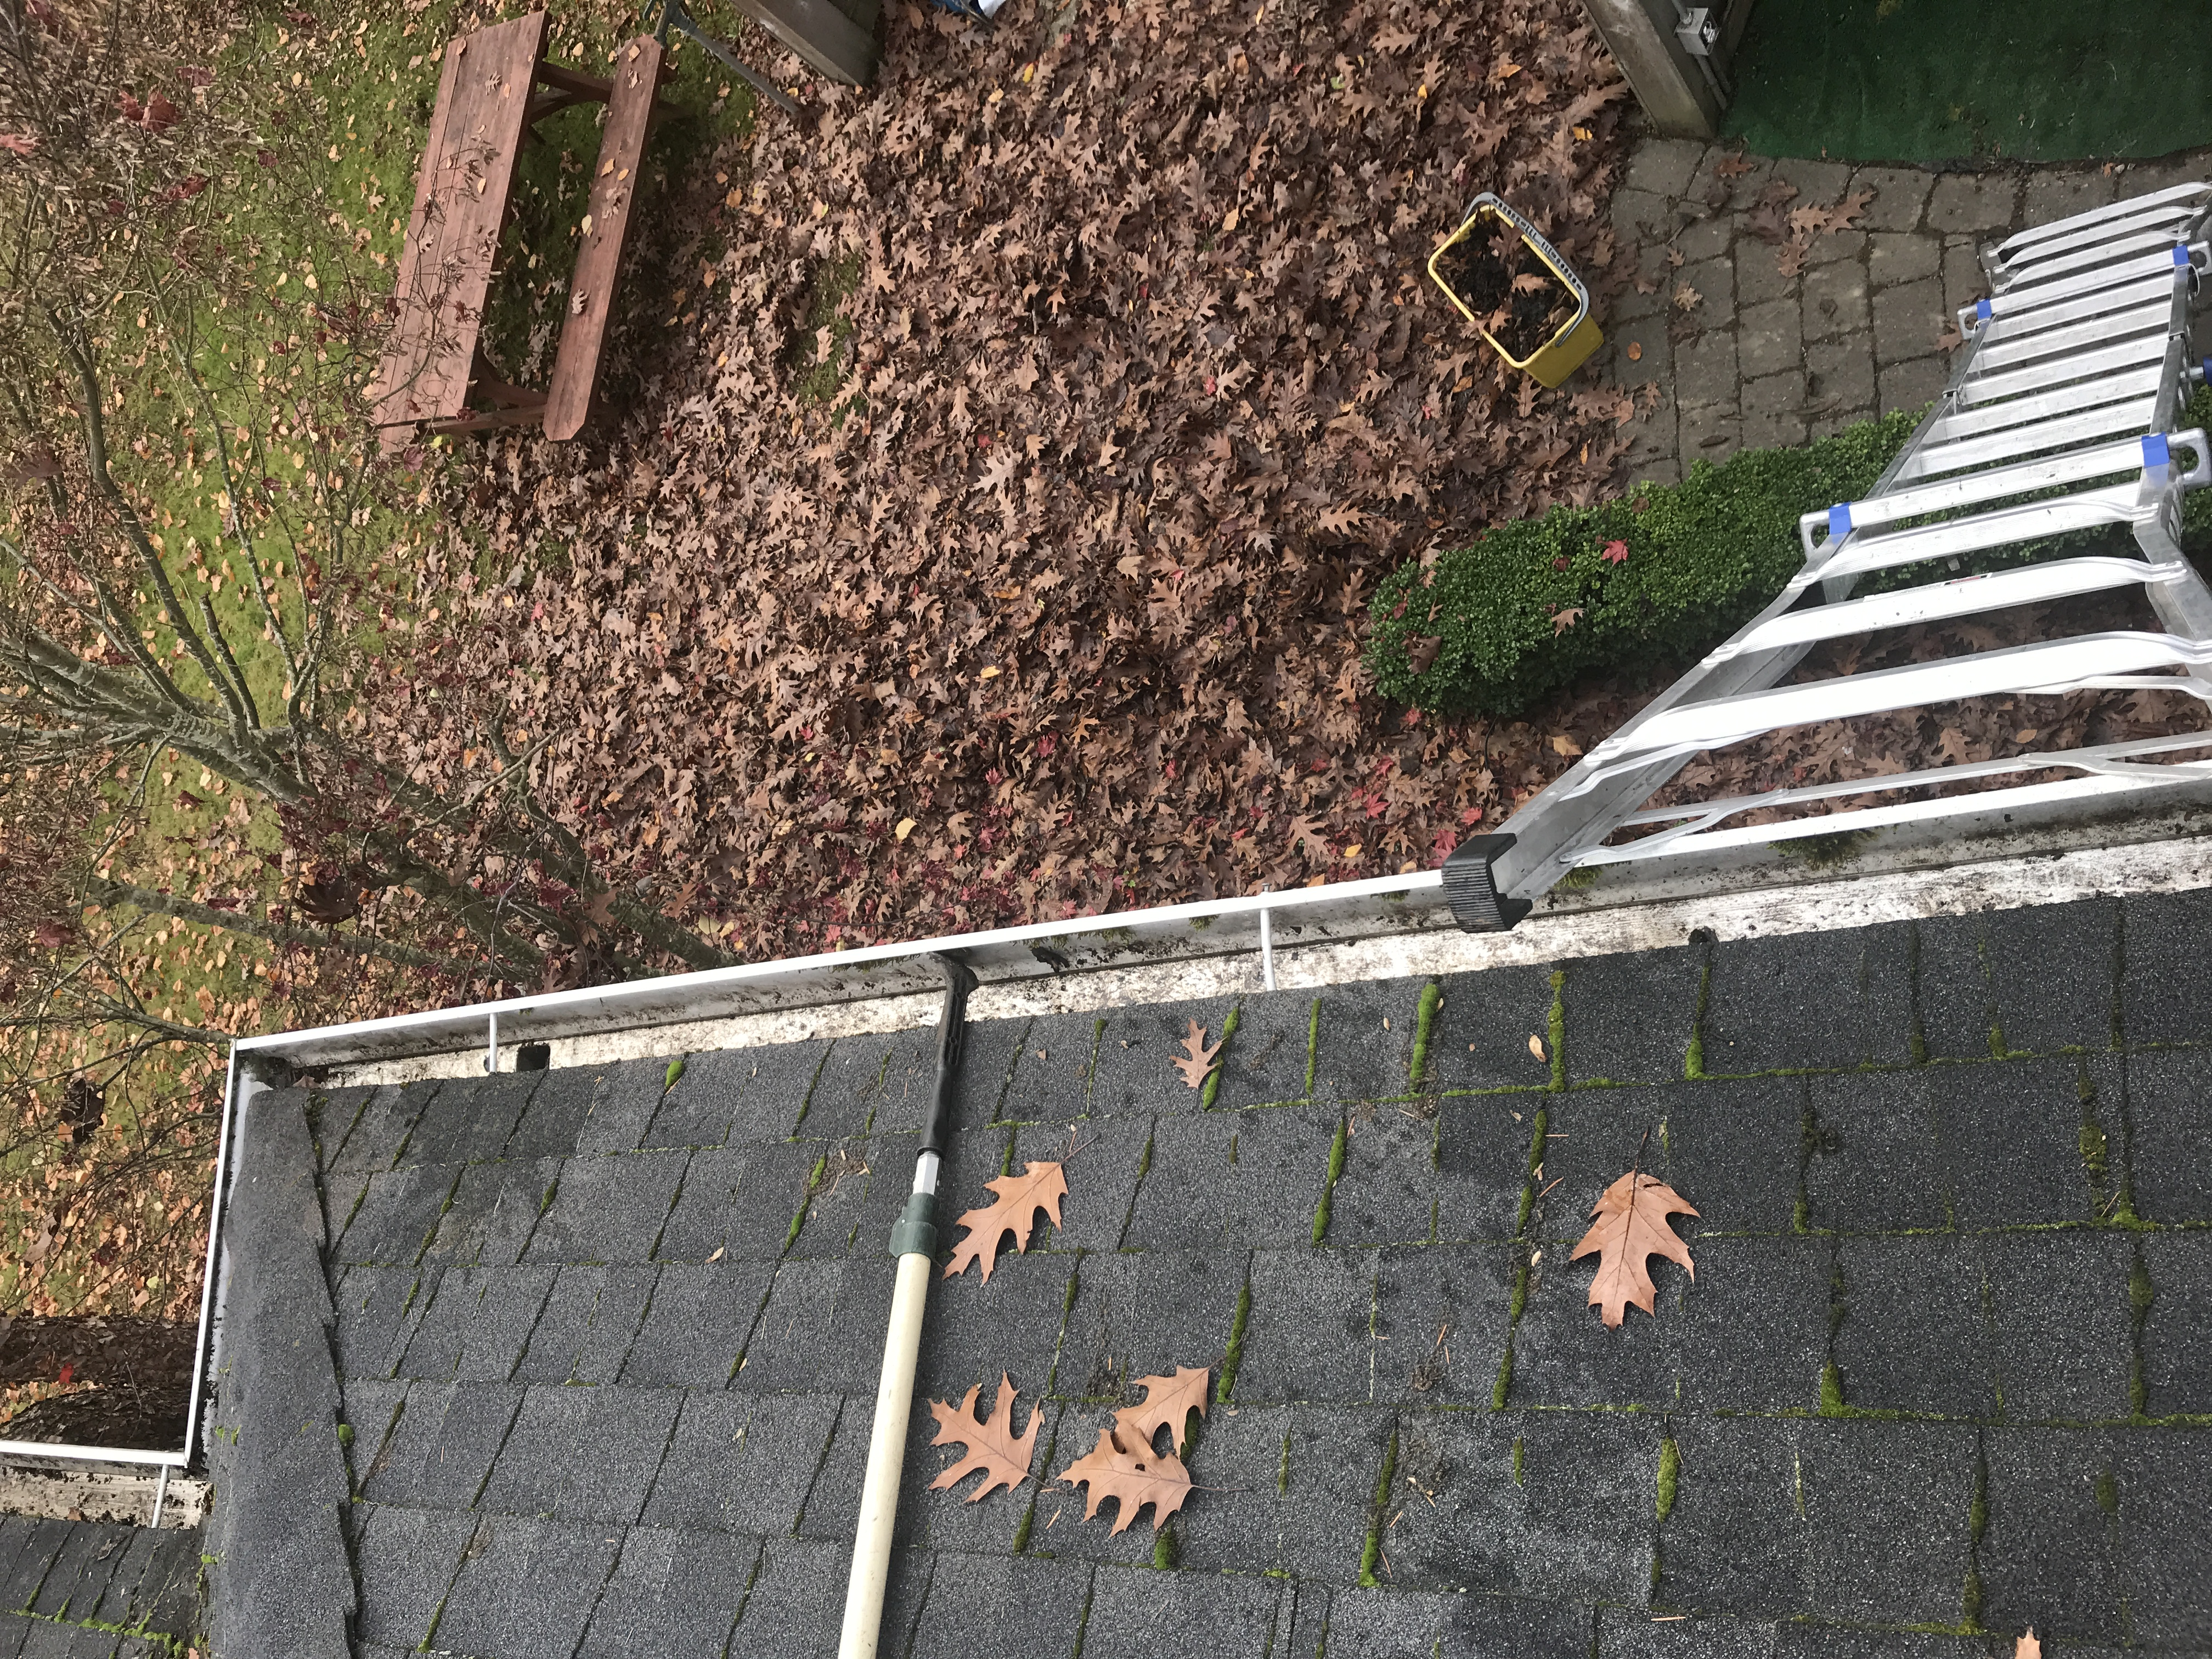 Gutter Cleaning Restore Pressure Cleaning Puyallup Wa